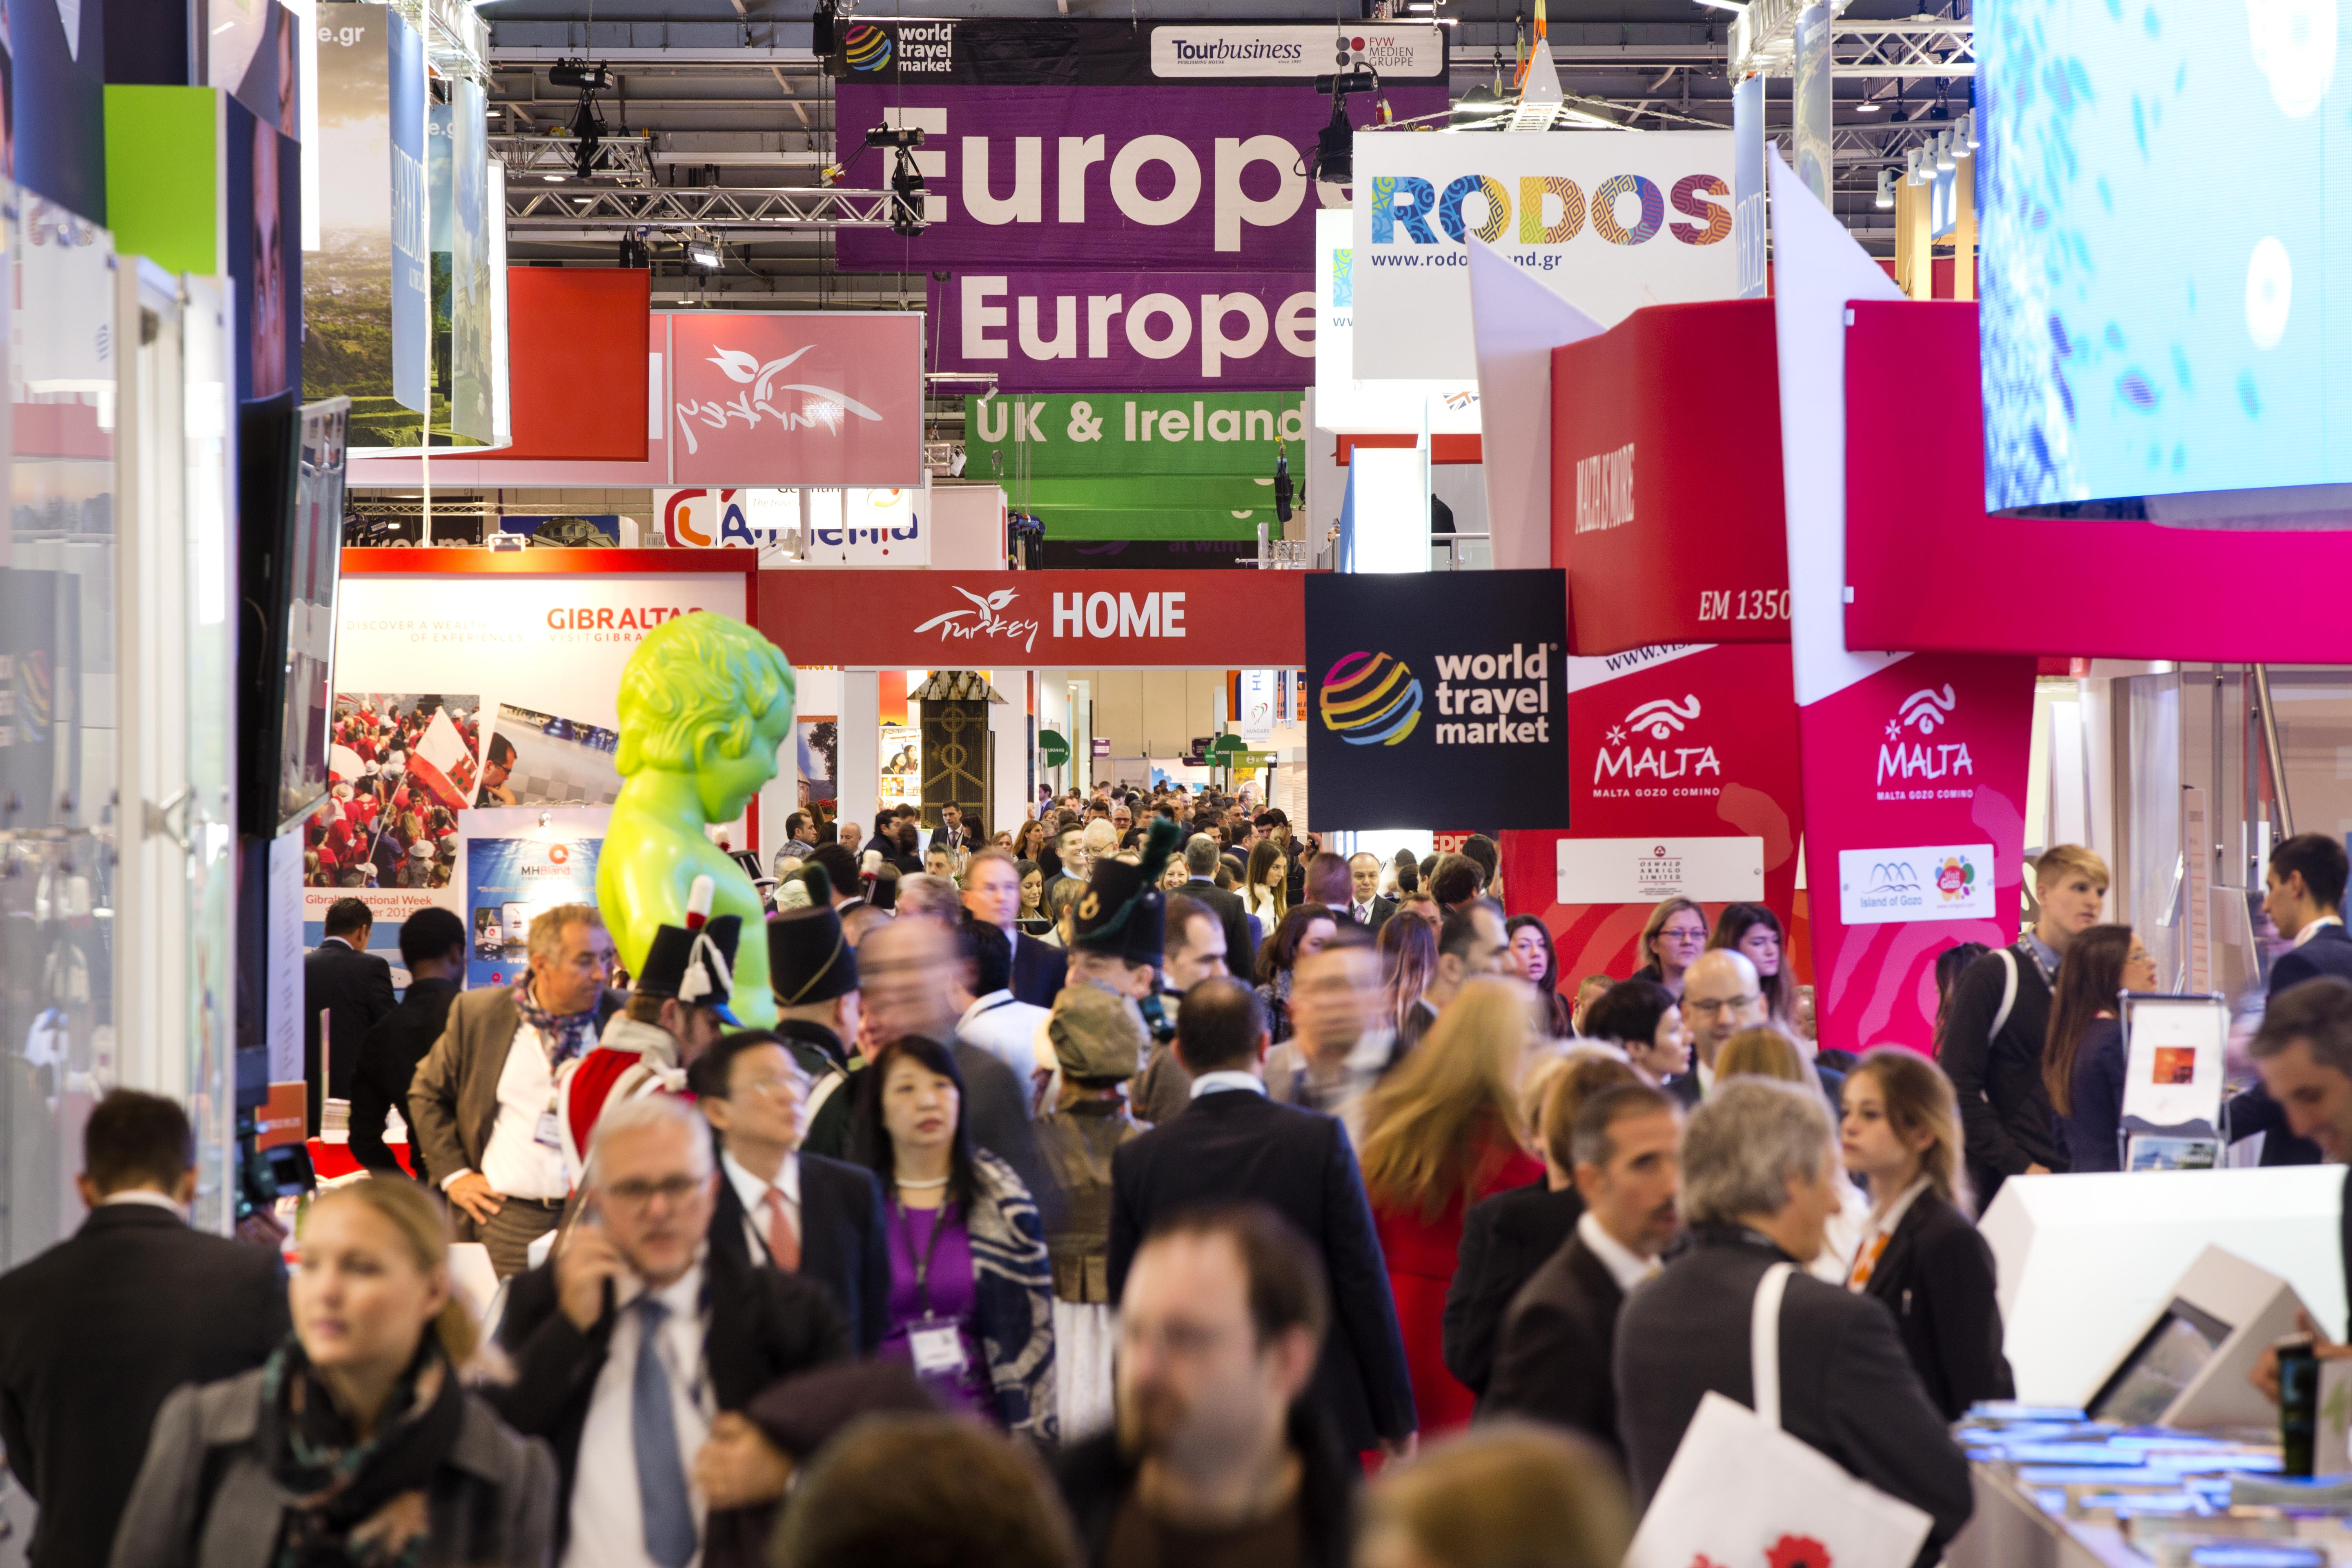 World Travel Market London 2016 To Be A Three Day Event Following Unprecedented Period Of Growth